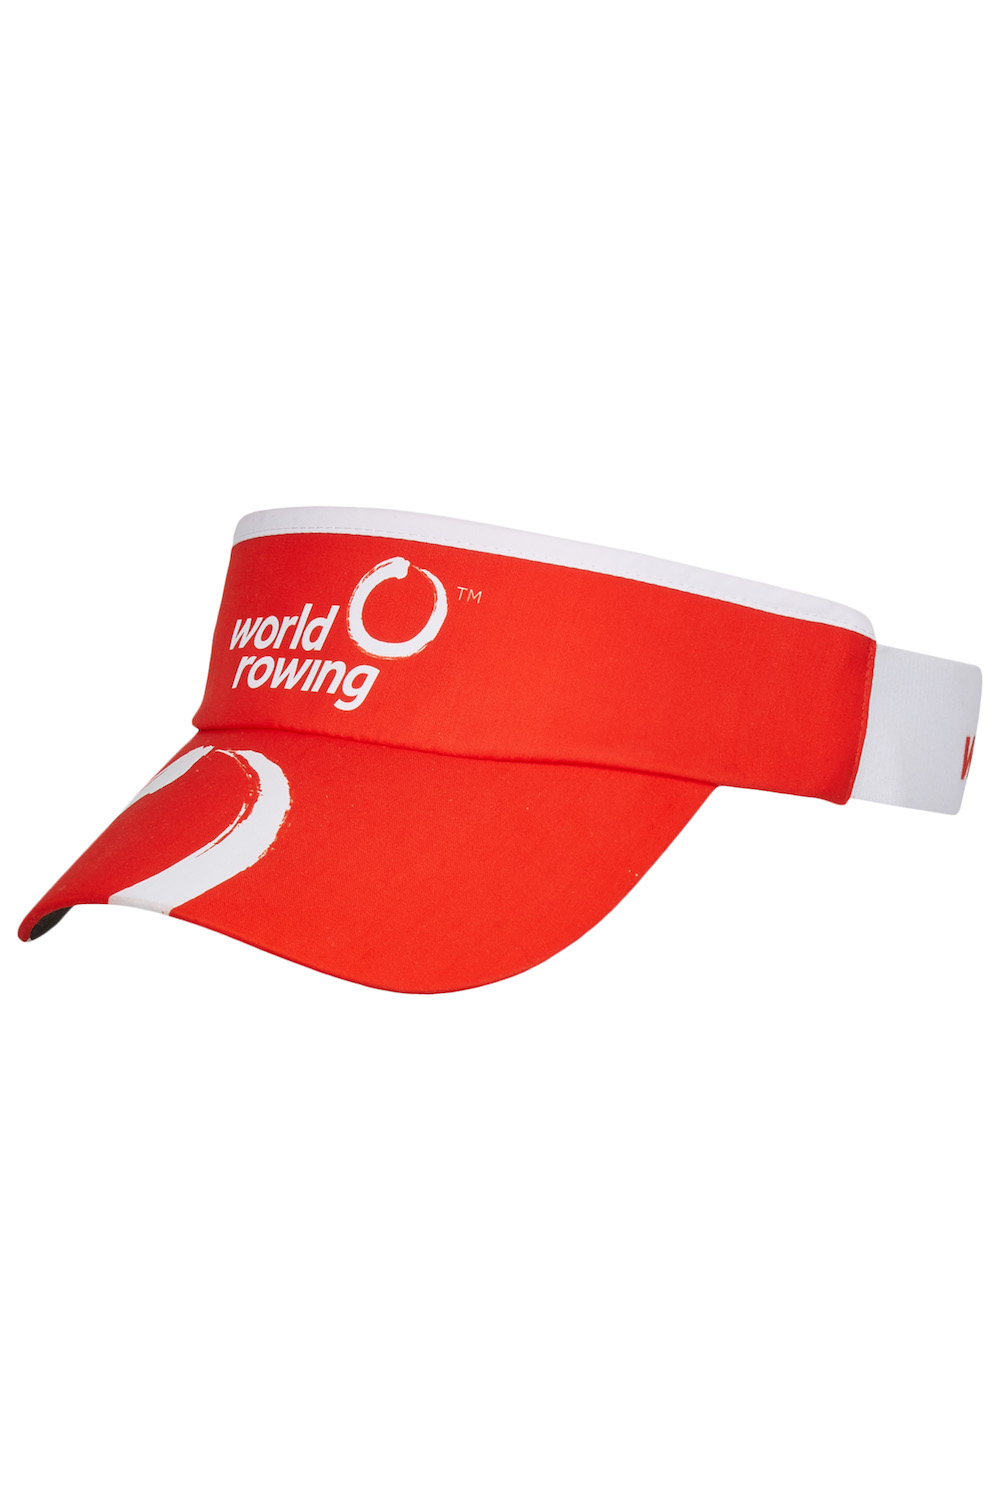 World Rowing Stretchy Sunvisor - red